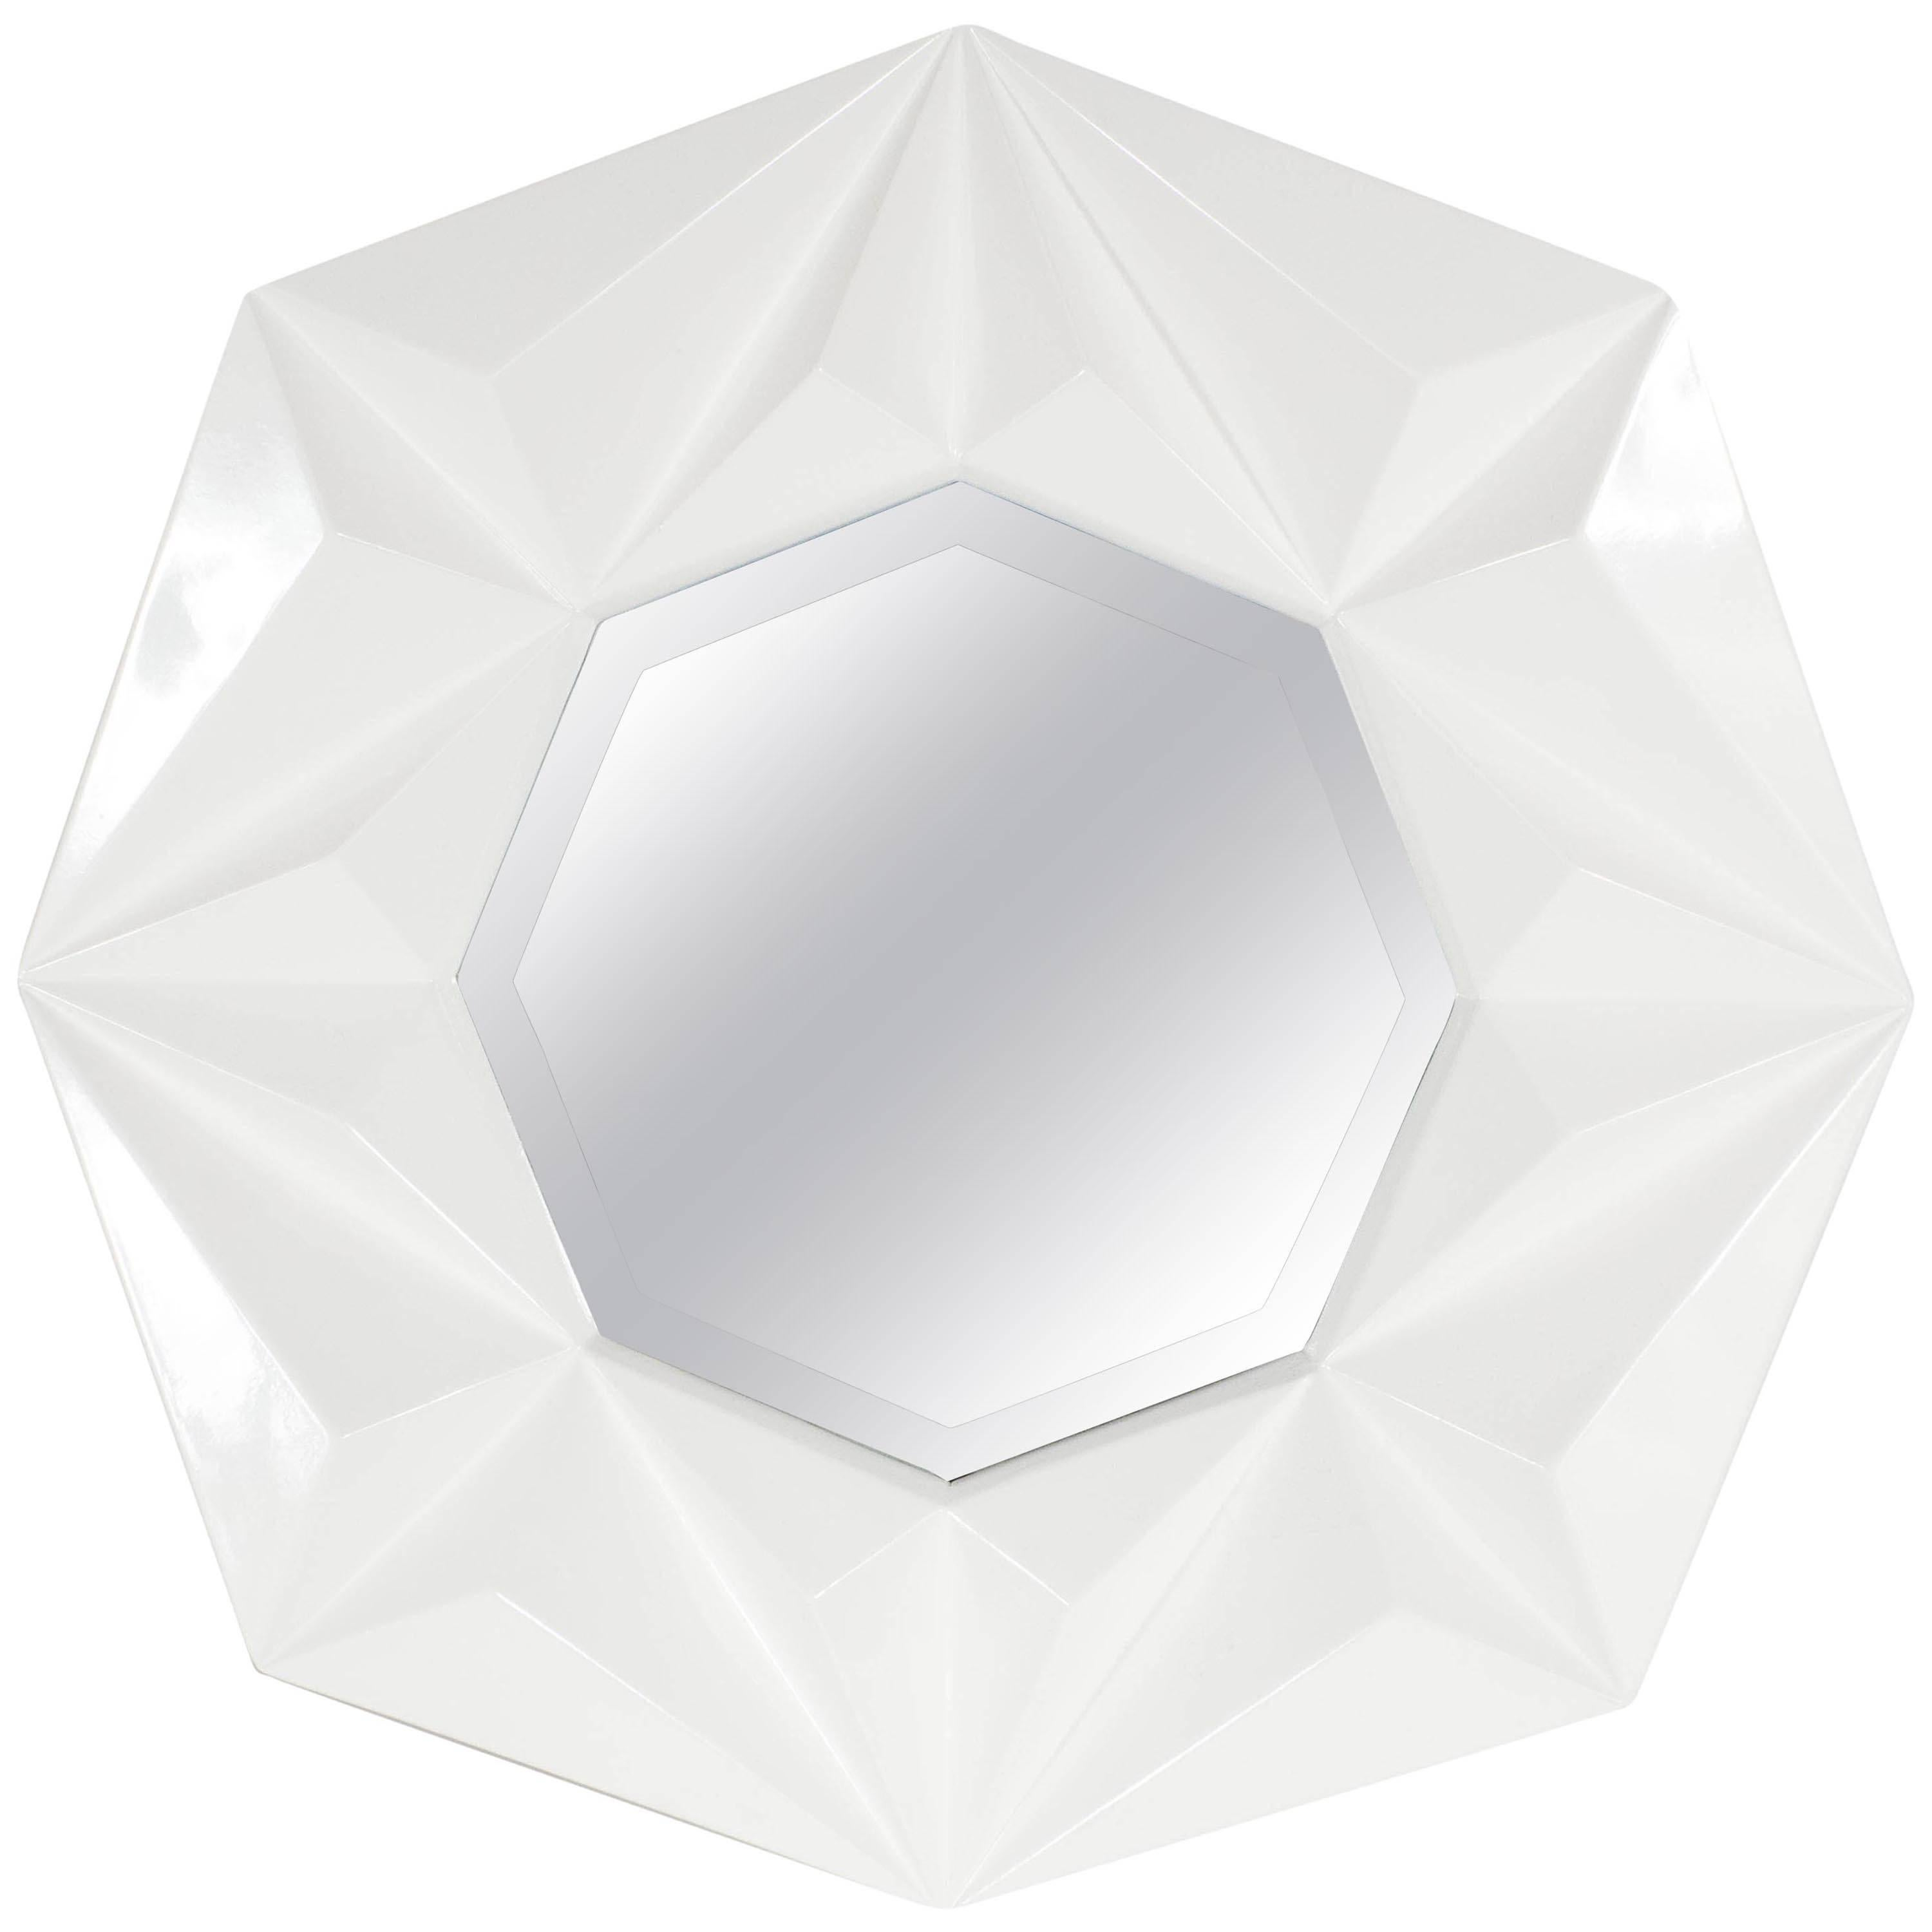 Modernist Faceted Octagonal Mirror in White Lacquer